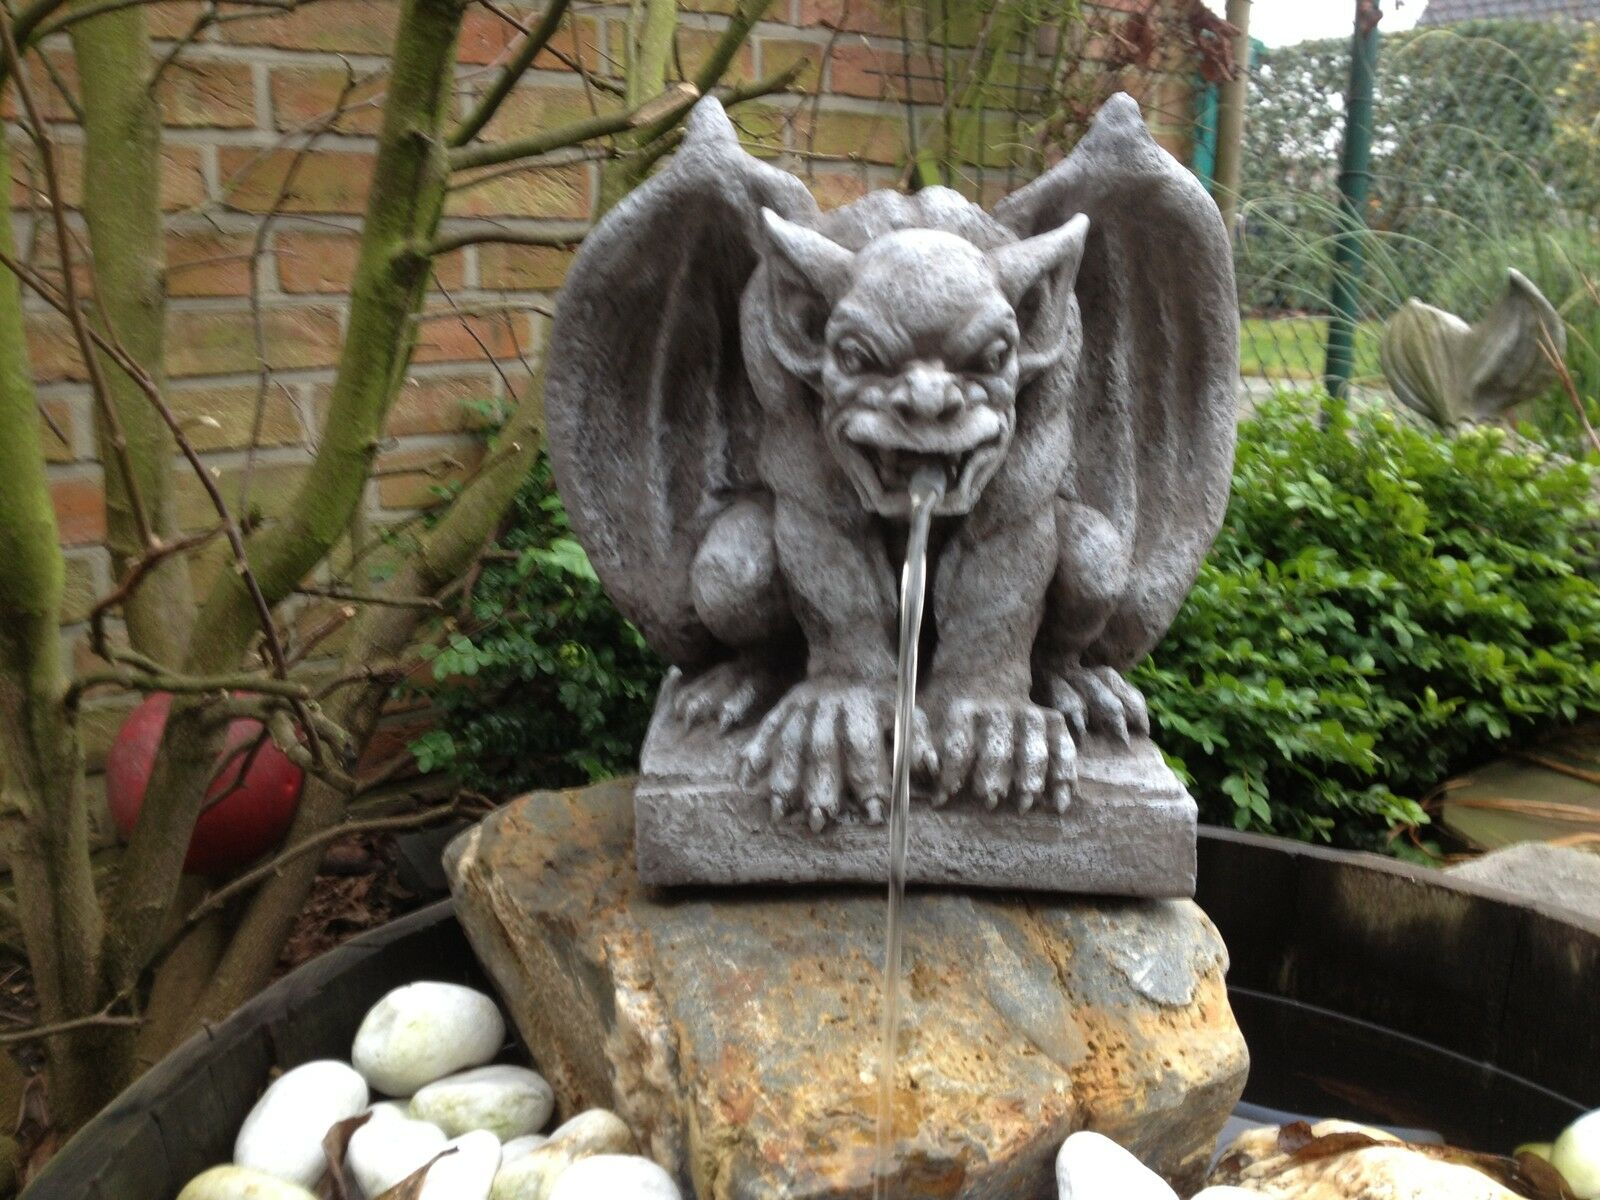 wasserspeier steinfigur gargoyle garten deko teich fantasiefigur gartenfigur eur 68 00. Black Bedroom Furniture Sets. Home Design Ideas